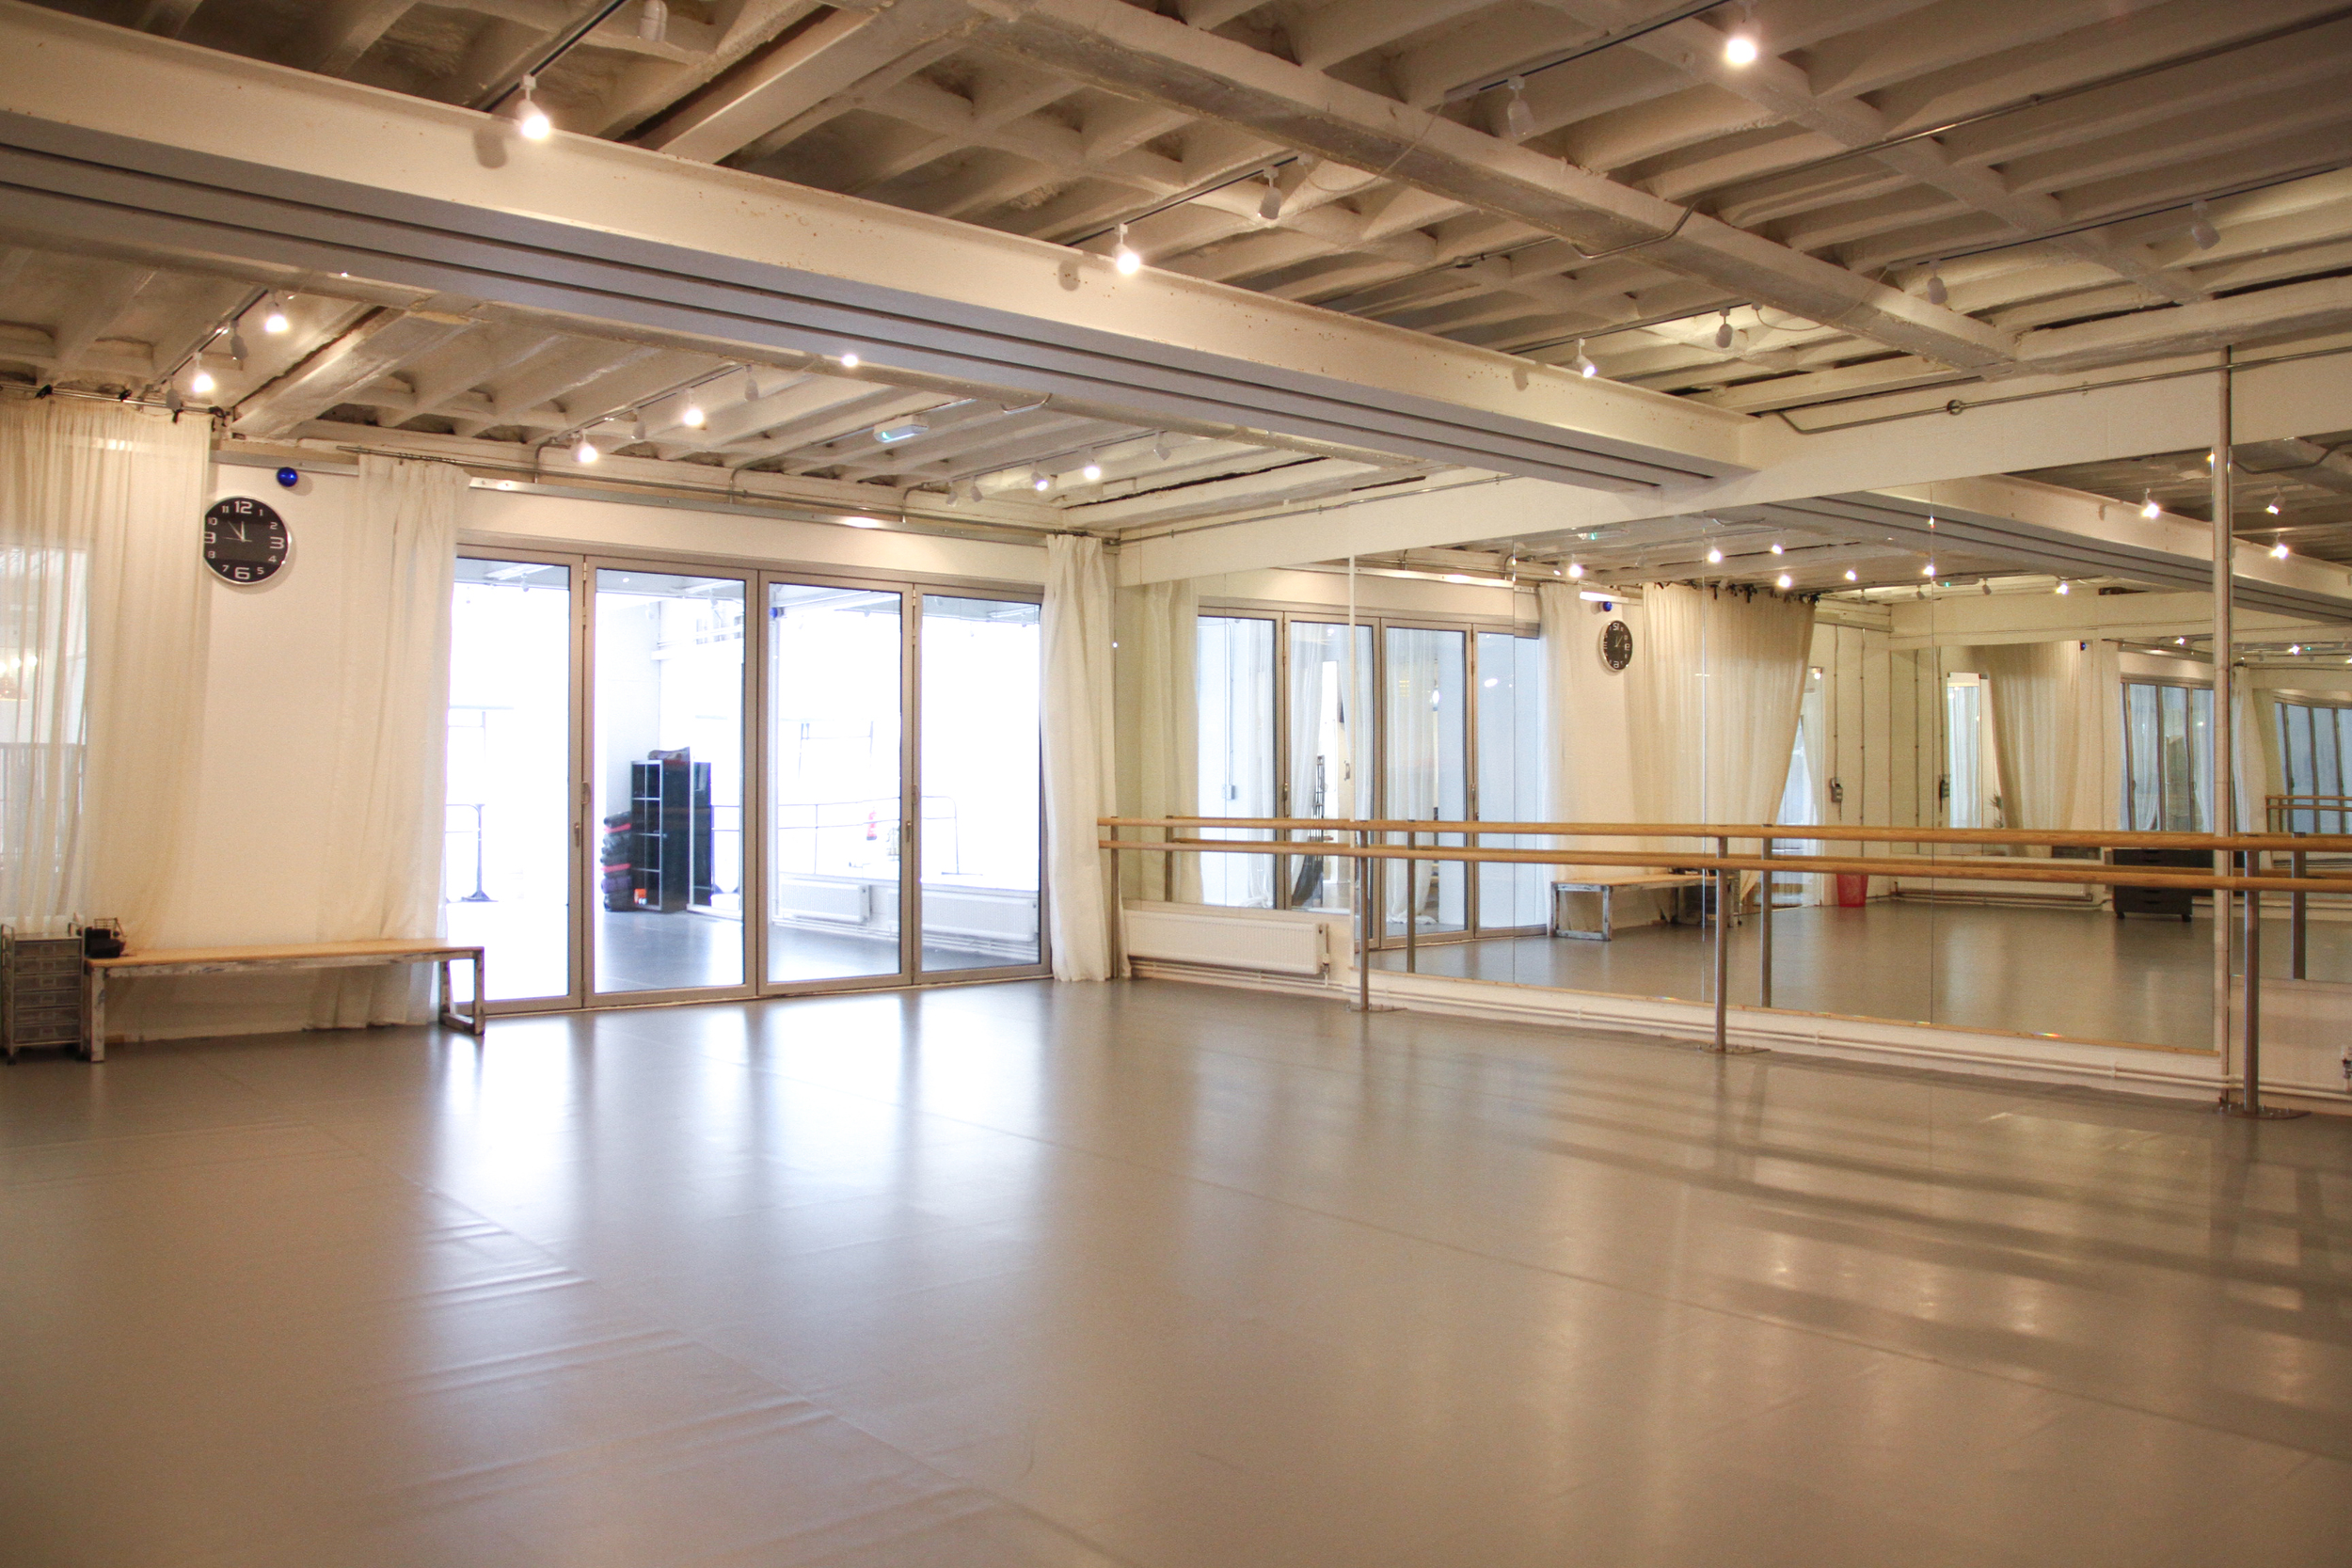 Our gorgeous Large studio looking through glass partition doors into the second studio space.